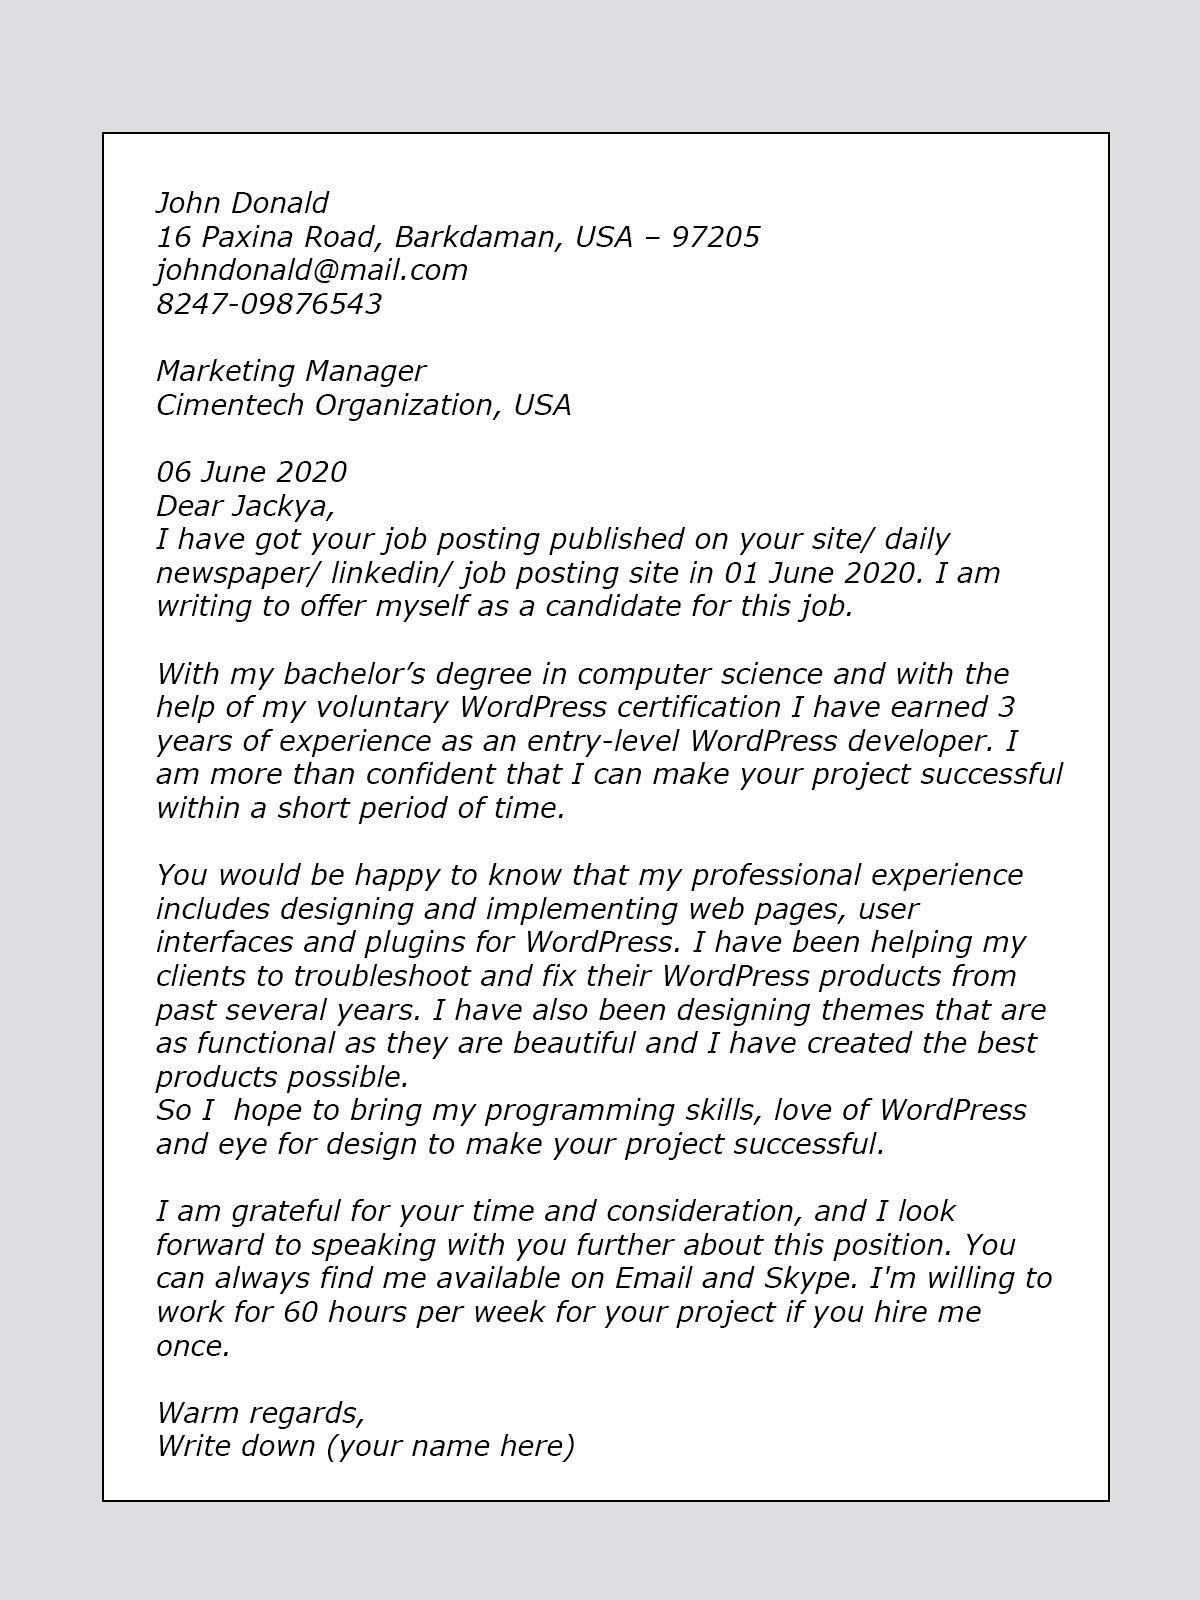 Upwork Cover Letter Sample for WordPress Developer - Upwork Help